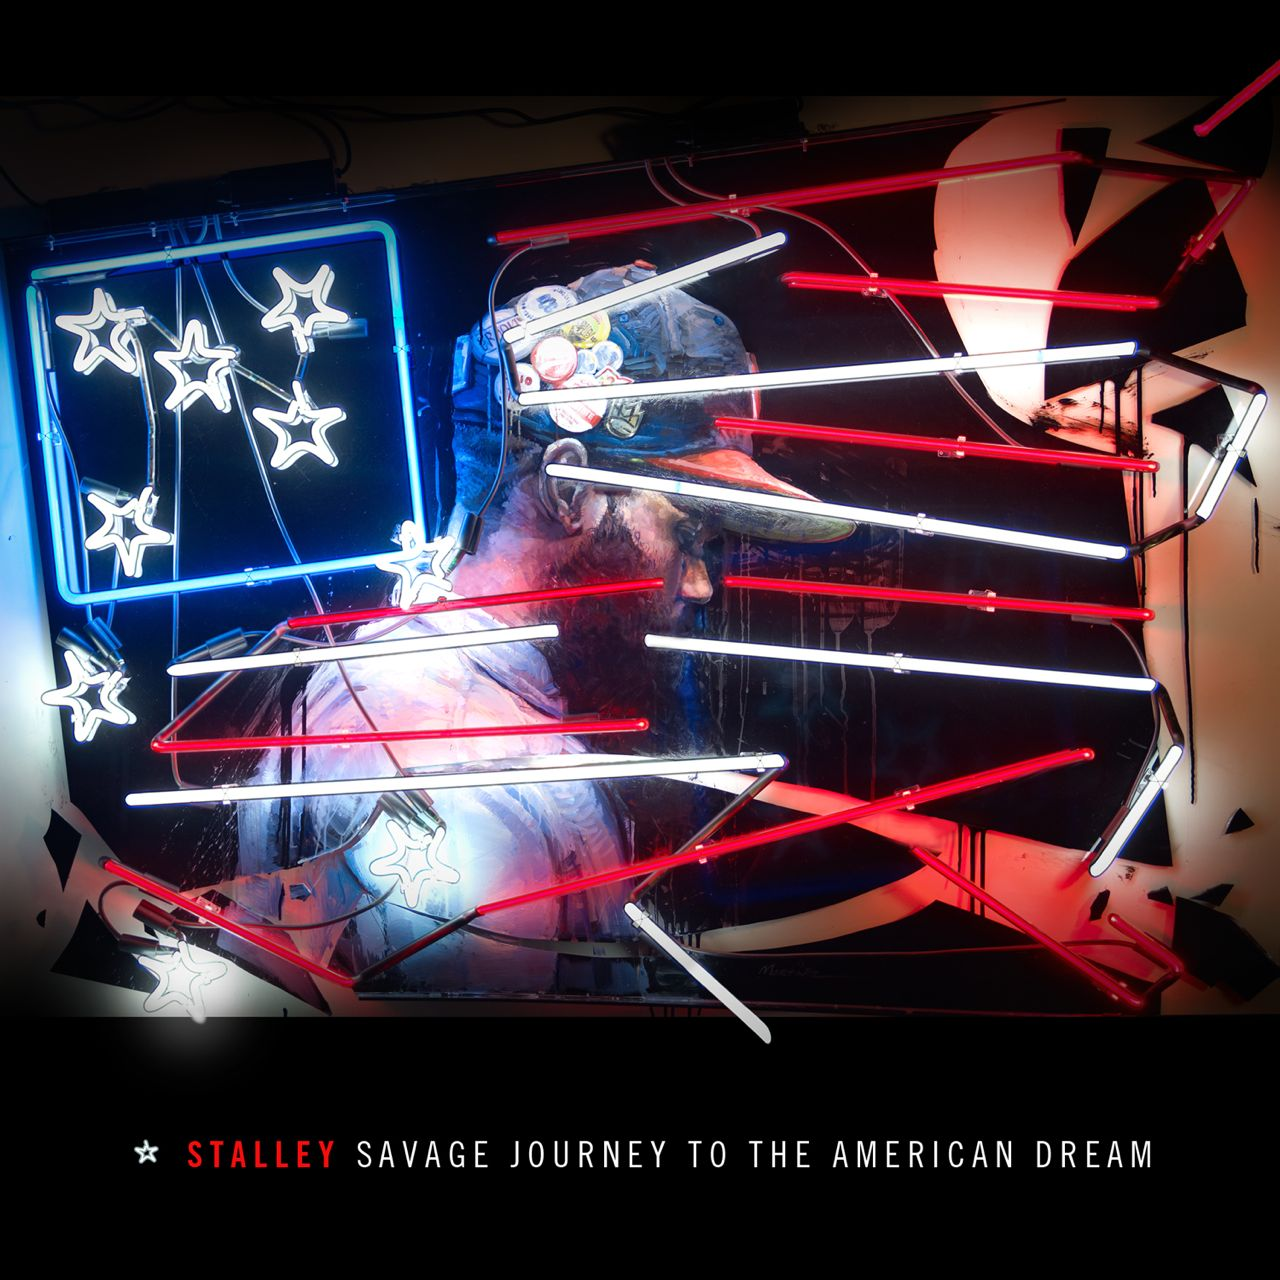 Stalley Patrick Martinez Savage Journey American Dream AM 1